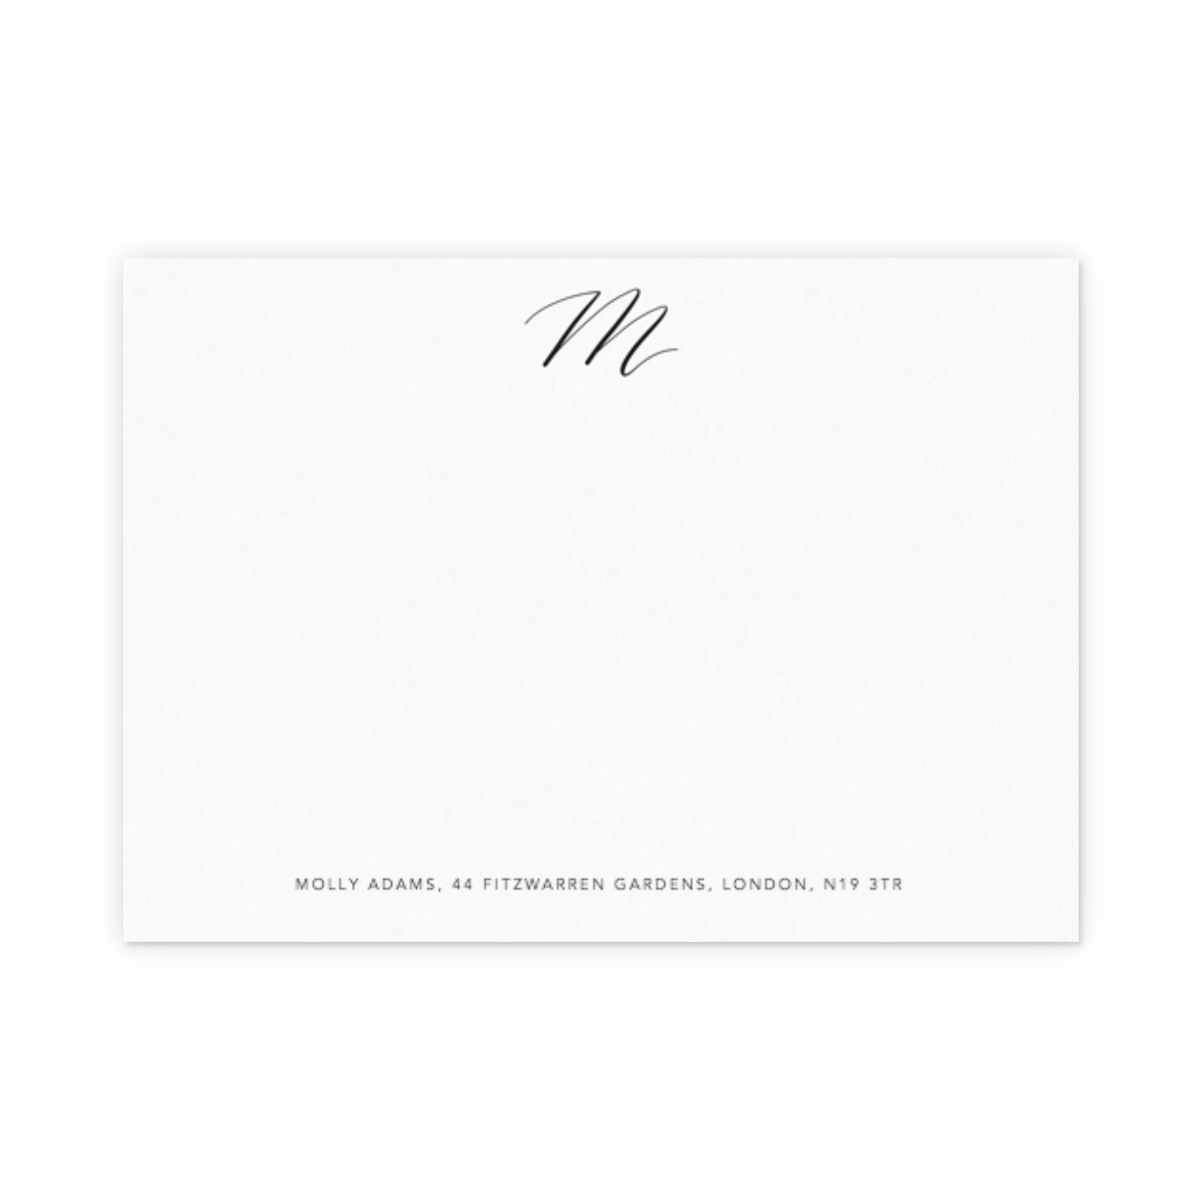 Https%3a%2f%2fwww.papier.com%2fproduct image%2f48511%2f10%2fmonogram smooth a z 11927 front 1539077744.png?ixlib=rb 1.1